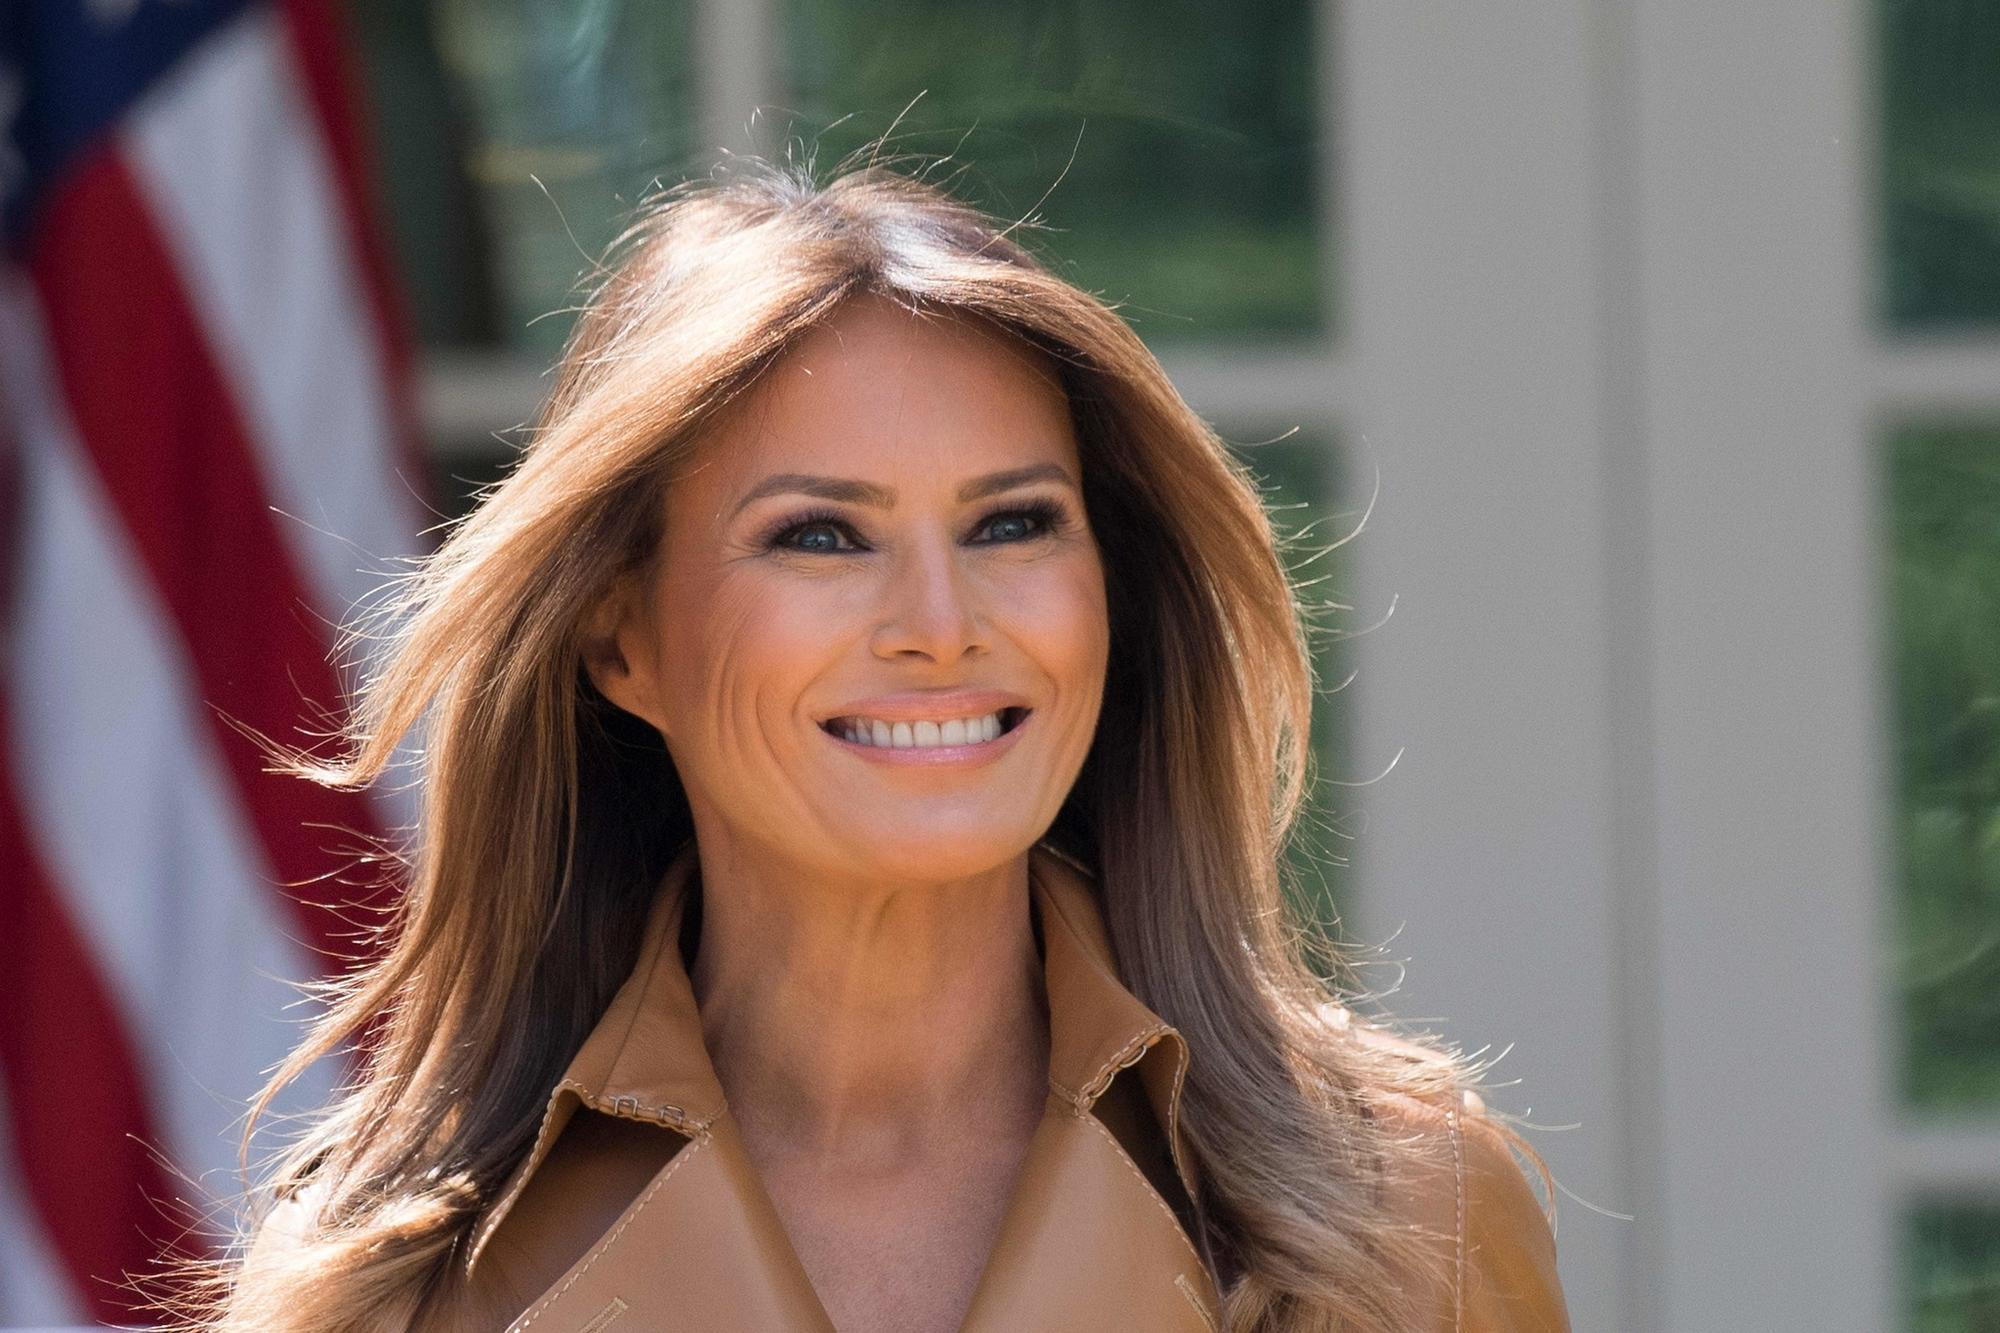 Melania Trump isn't missing — she's living with the Obamas ...